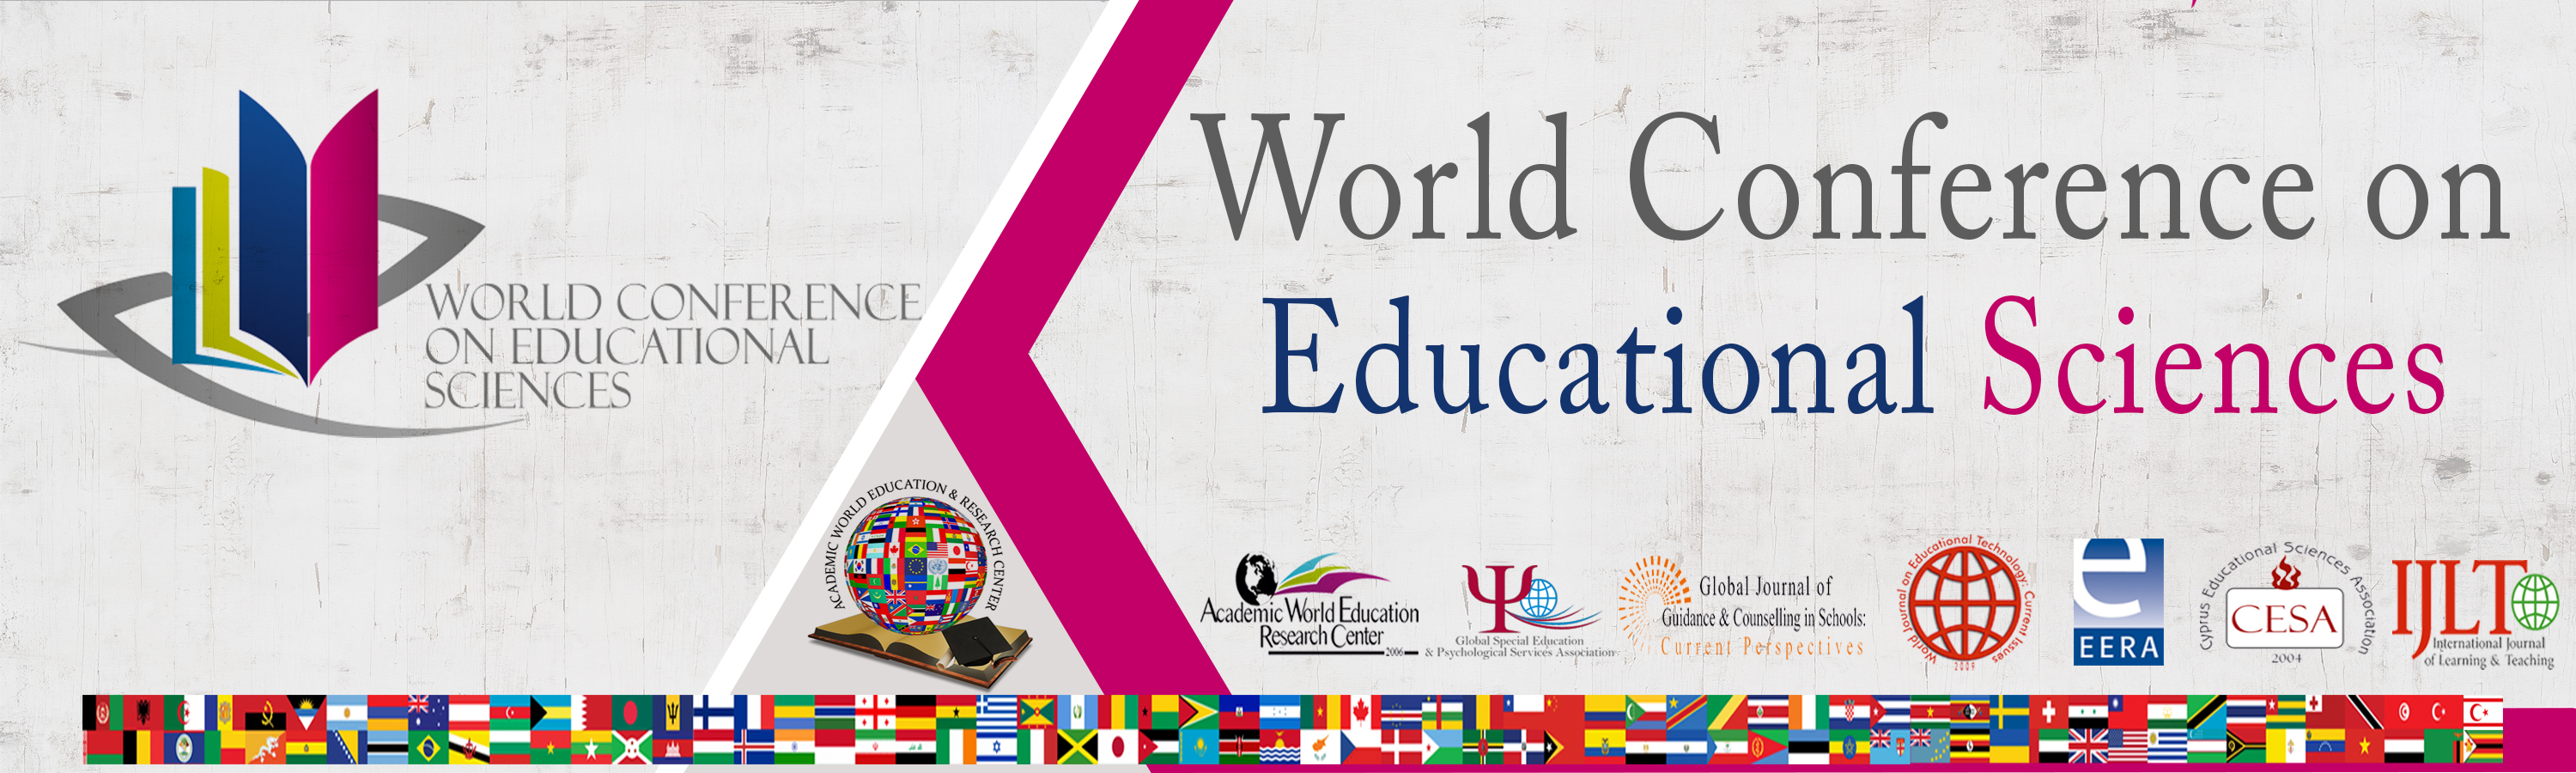 World Conference on Educational Sciences